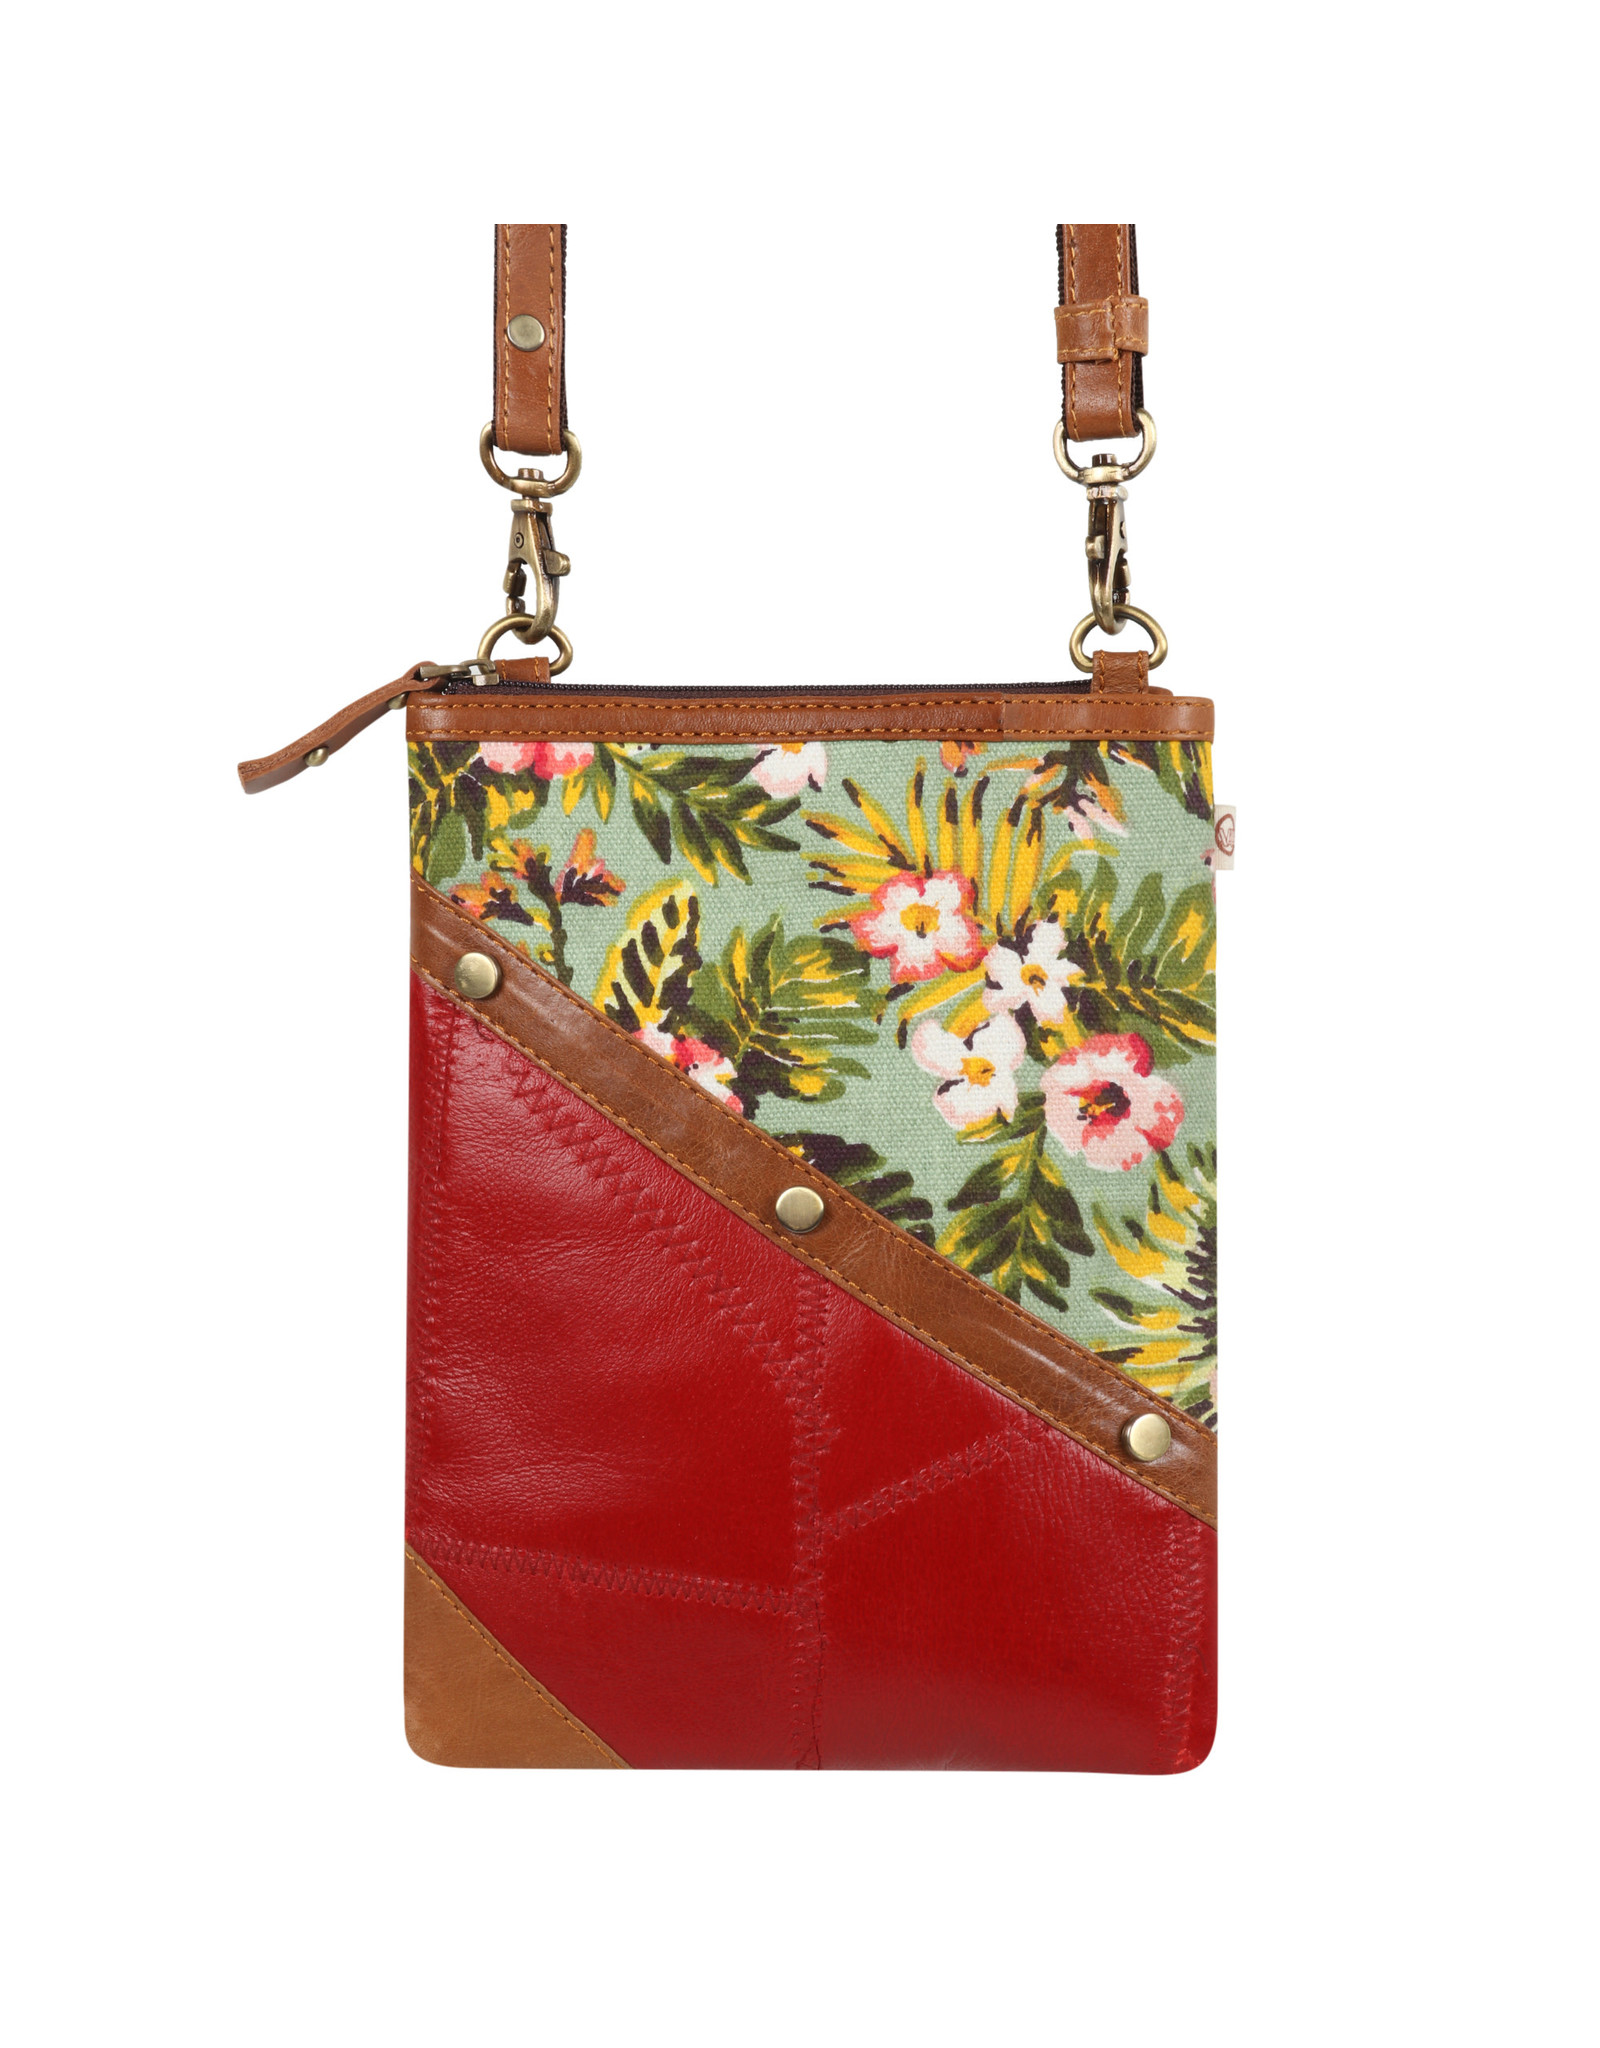 Vann & Co S2V-415 RFID Small Brisk Crossbody Bag